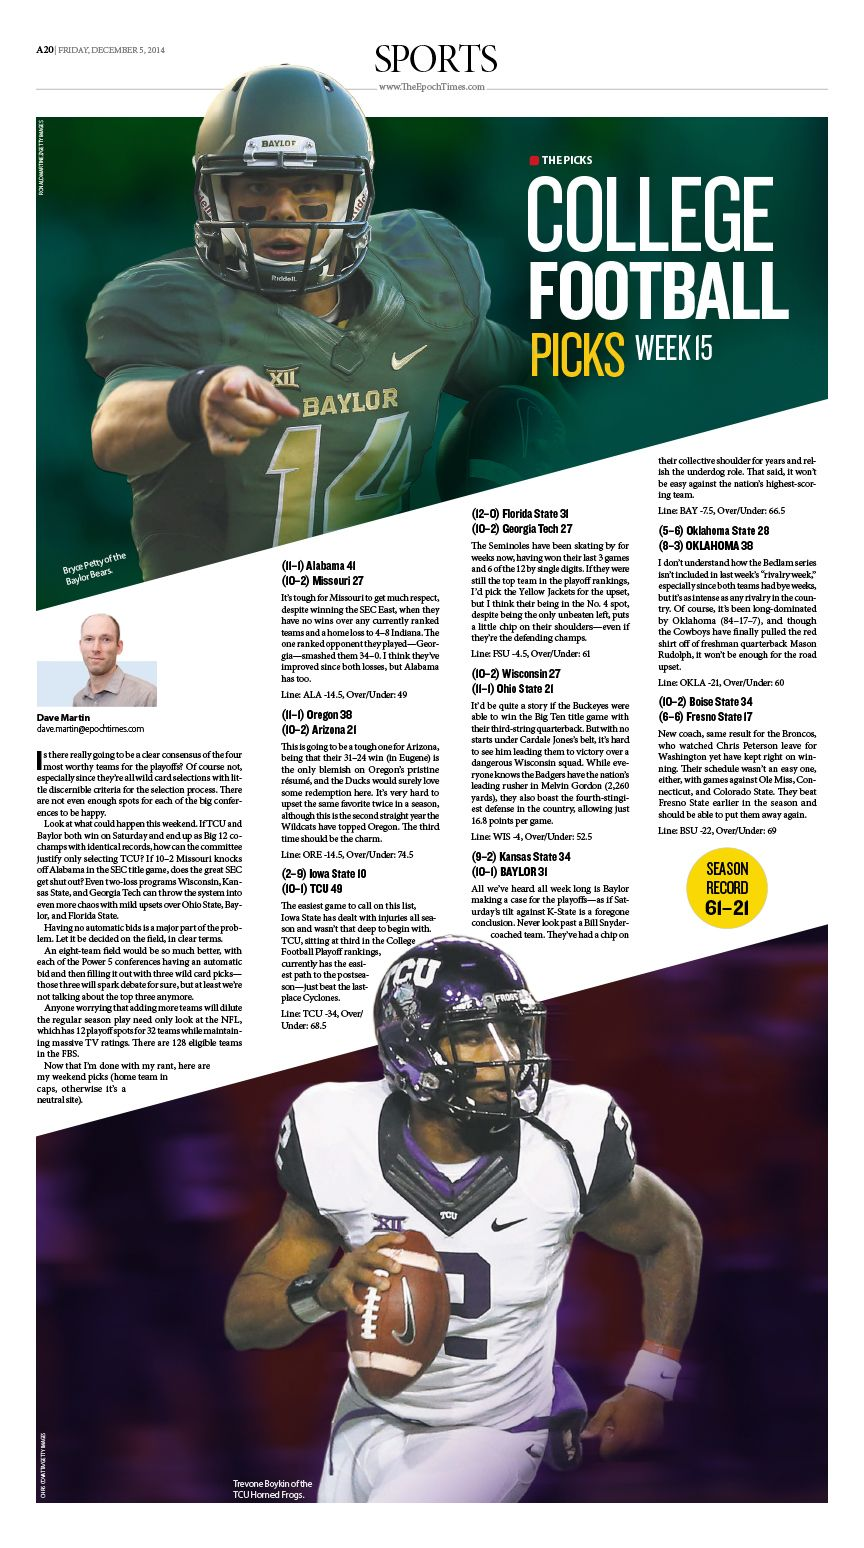 College Football Picks Epoch Times Newspaper Editorialdesign